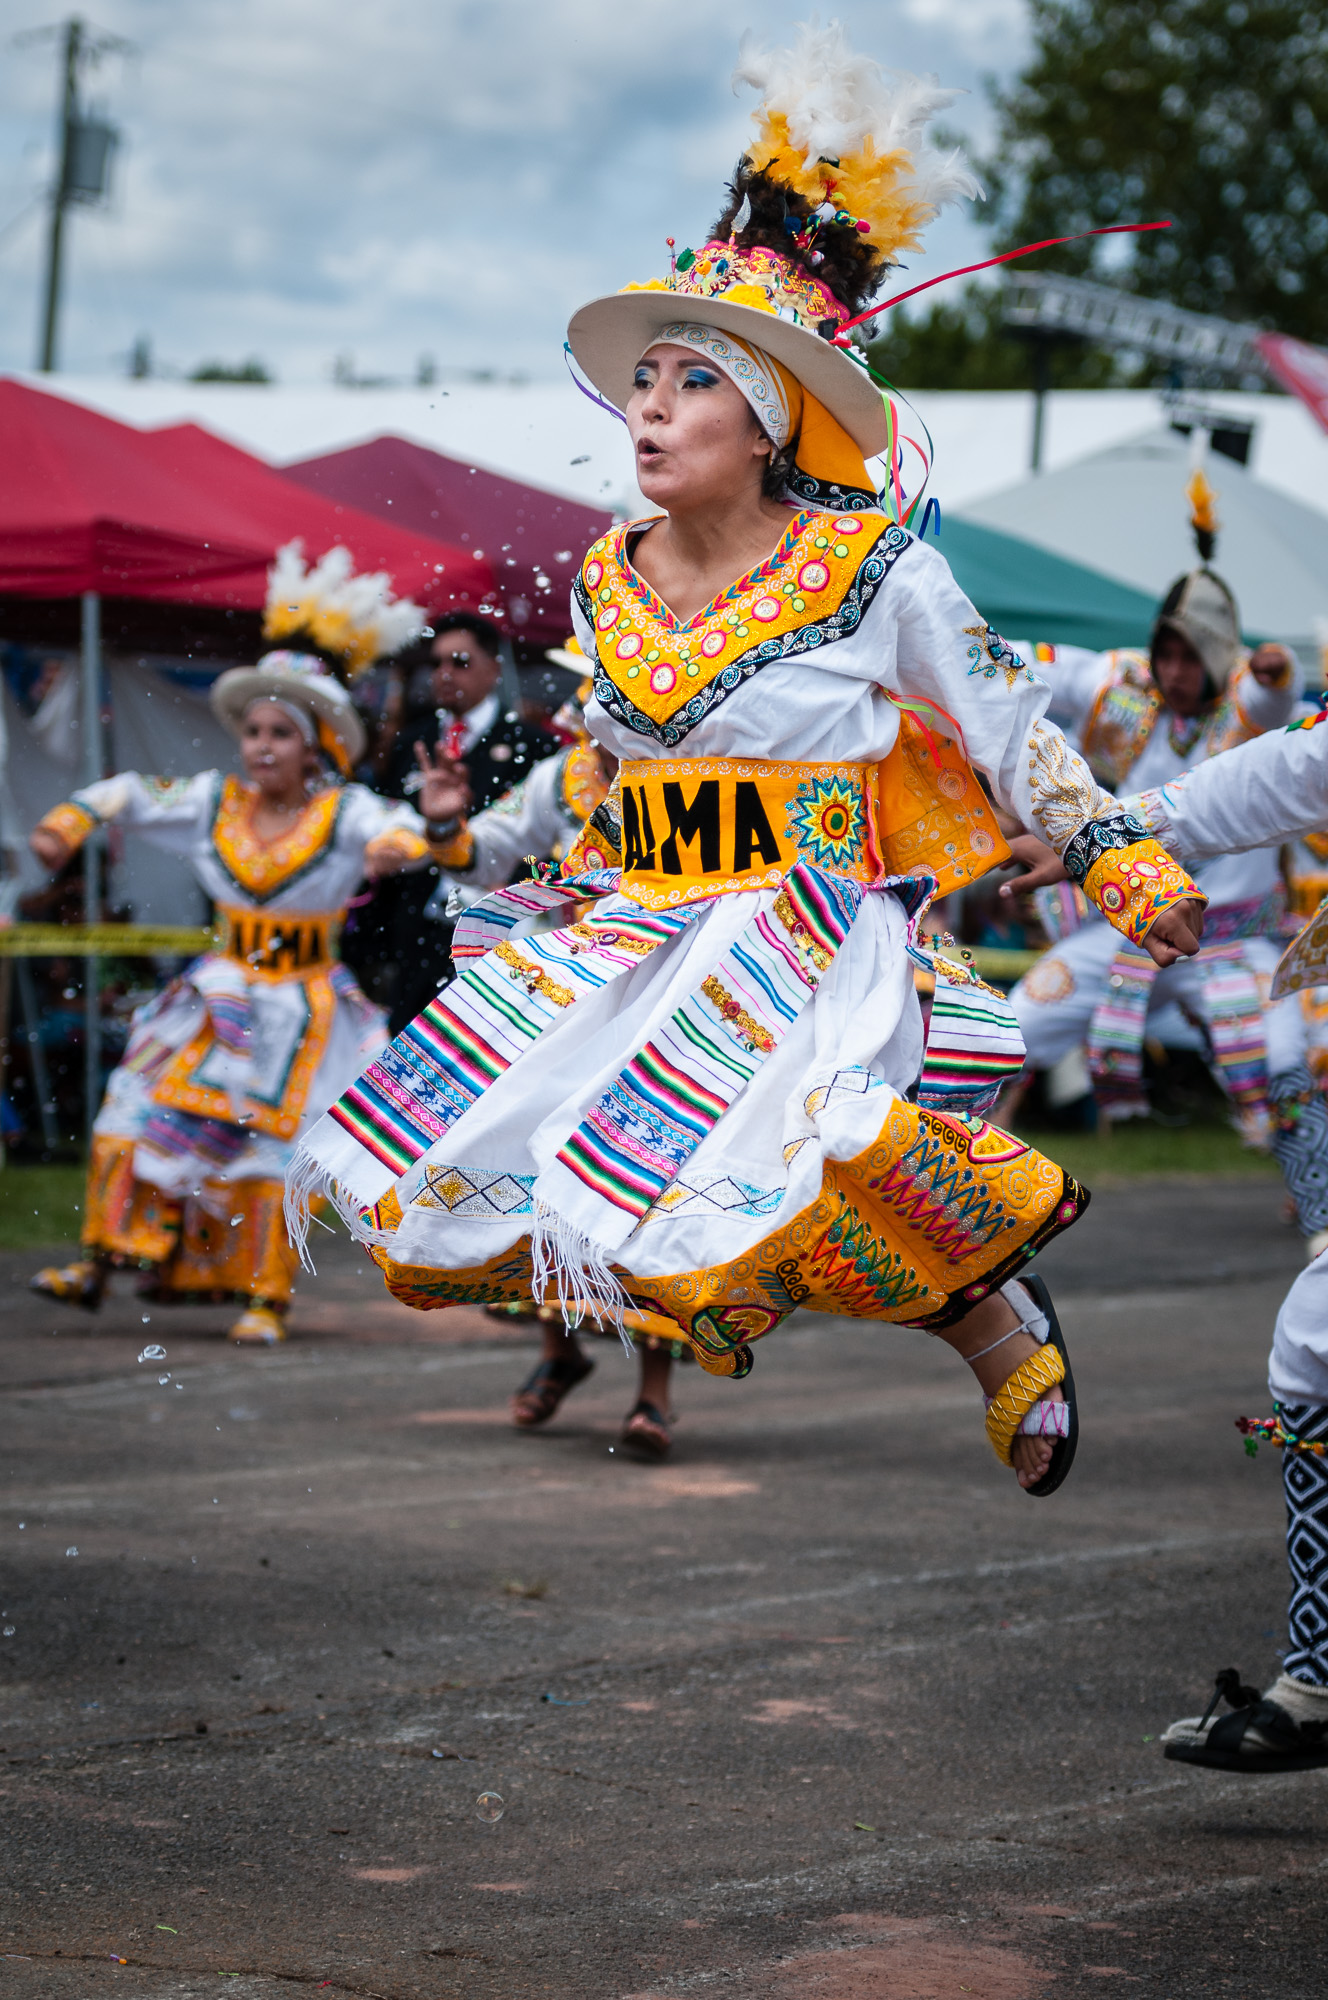 This member of Fraternidad Alma Boliviana showed such energy, jumping into the air during their performance of a Tinkus dance. Notice the water droplets to the side, splashed on the performers from folks walking alongside them, helping them cool down on the hot day.